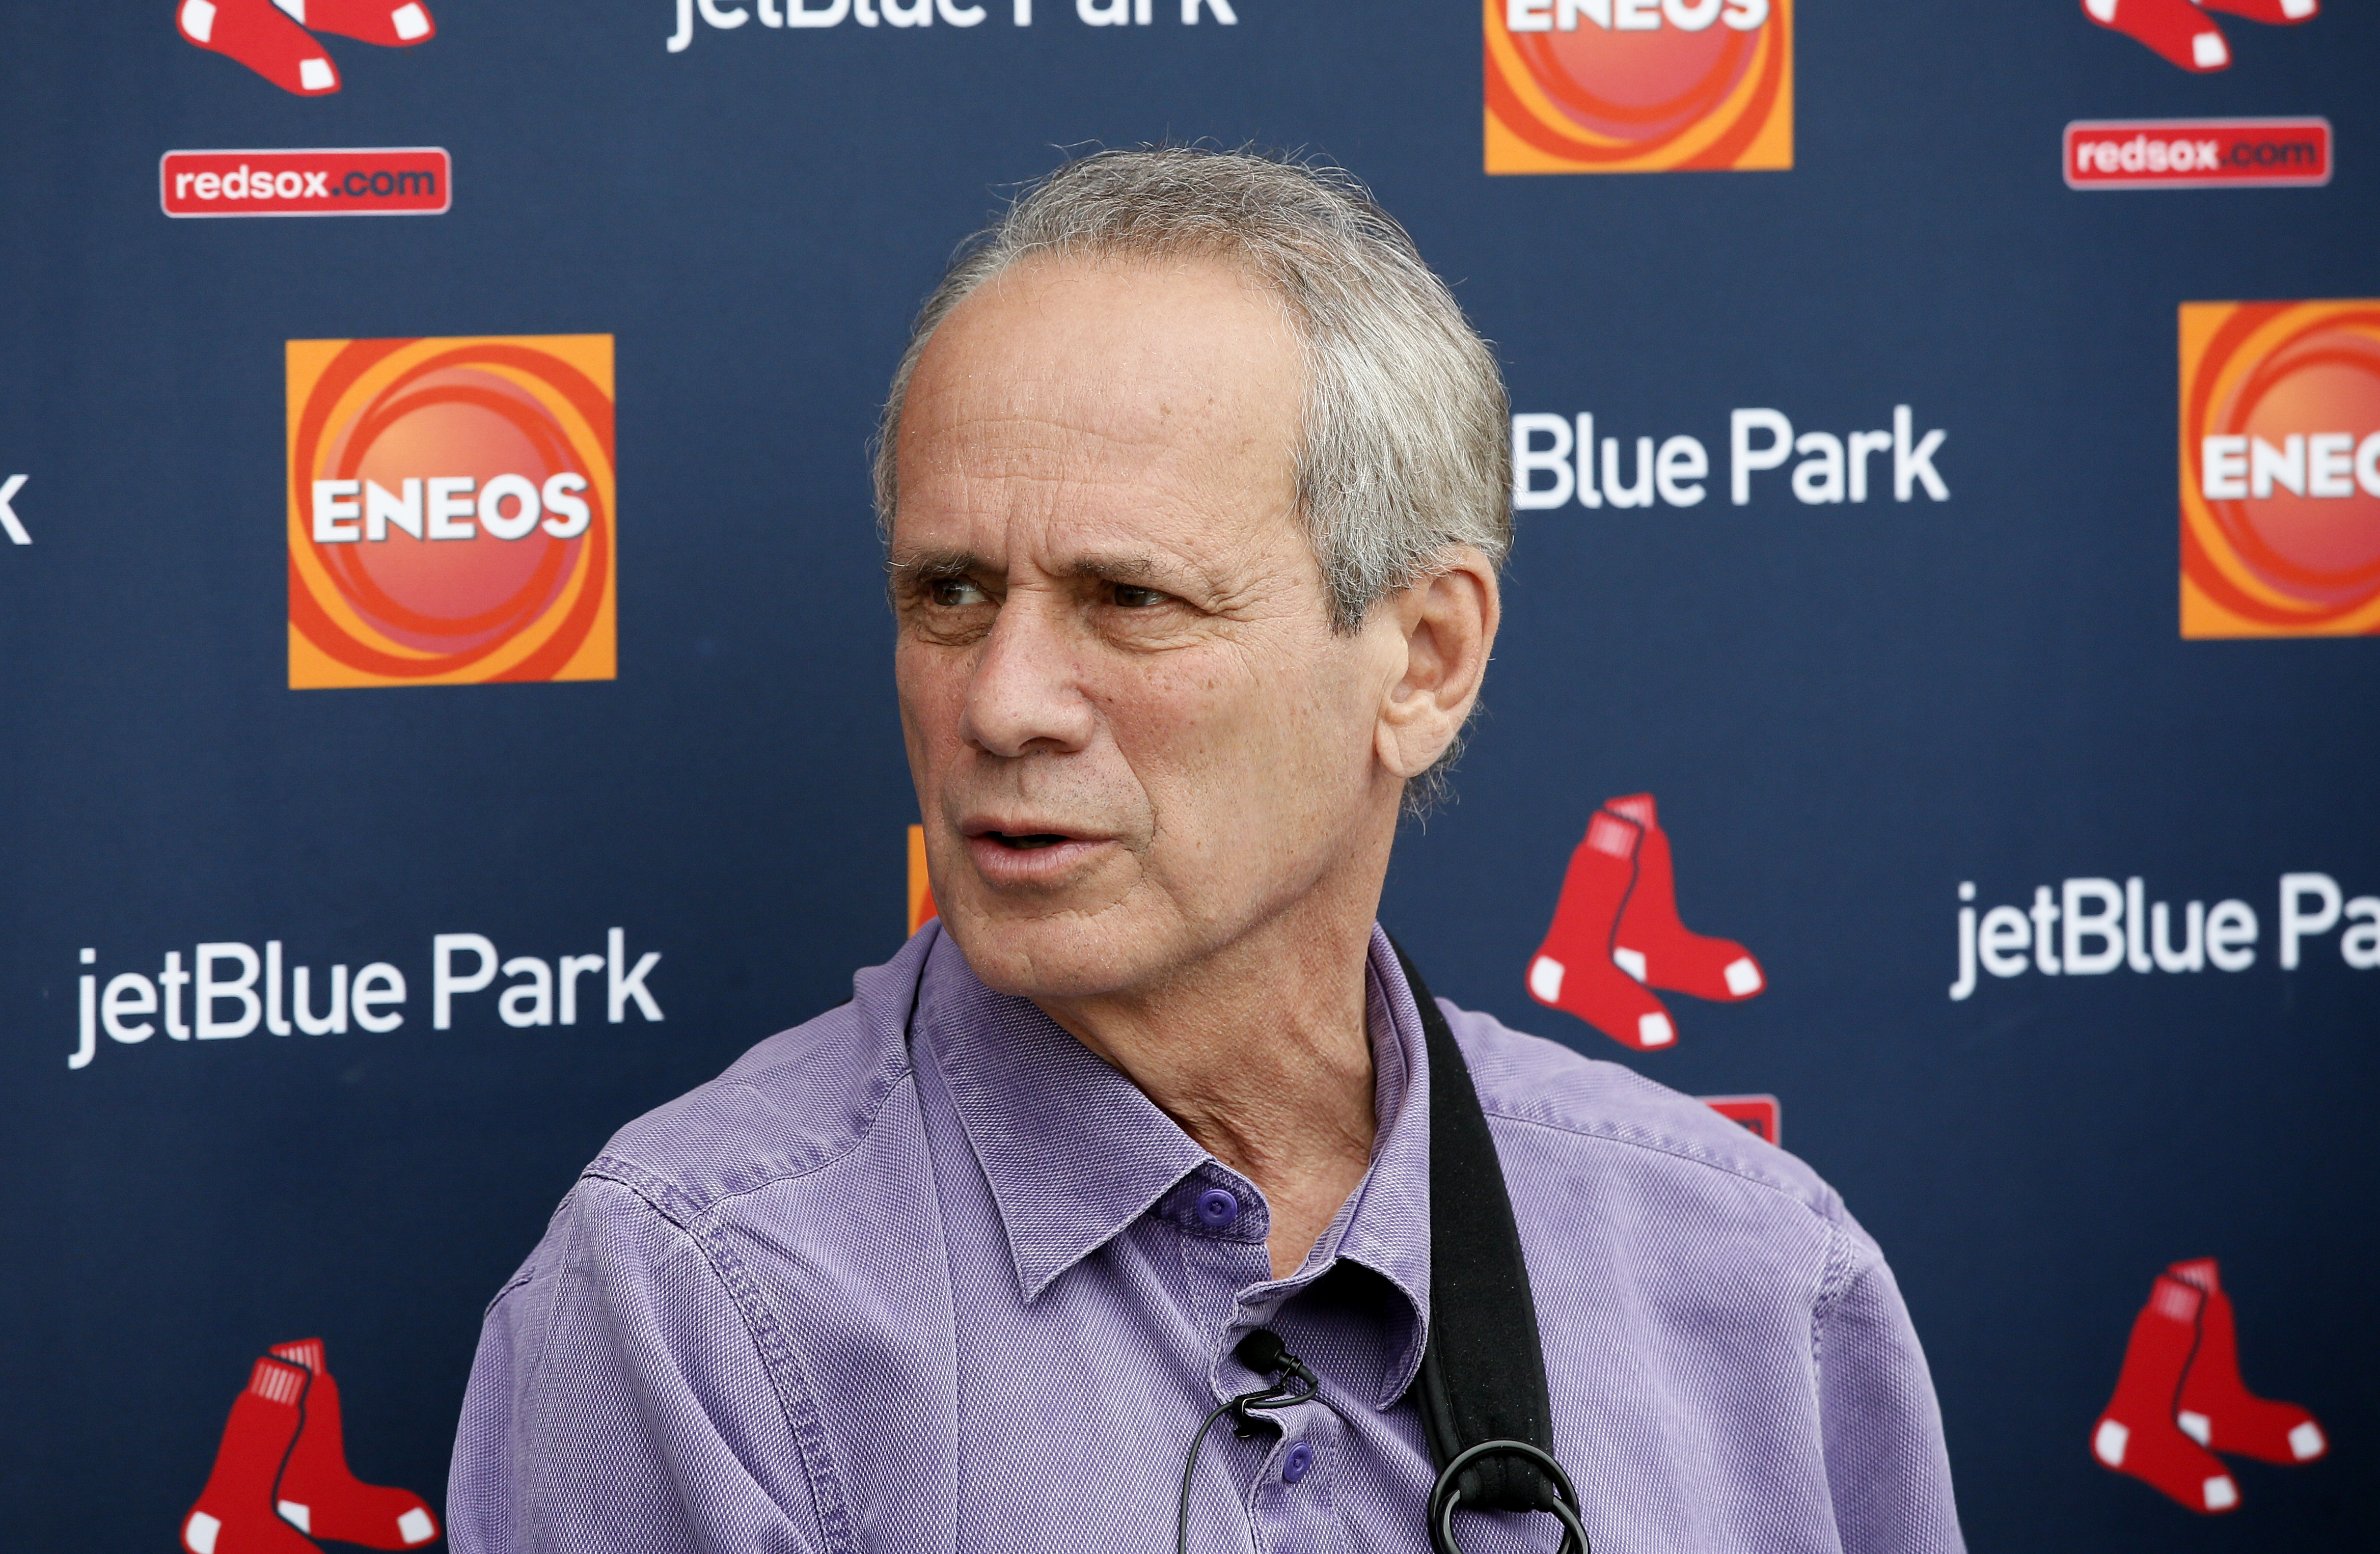 Boston Red Sox President and Chief Executive Officer Larry Lucchino, responds to questions during a news conference before a team workout at baseball spring training in Fort Myers Fla., Wednesday Feb. 25, 2015. (AP Photo/Tony Gutierrez)